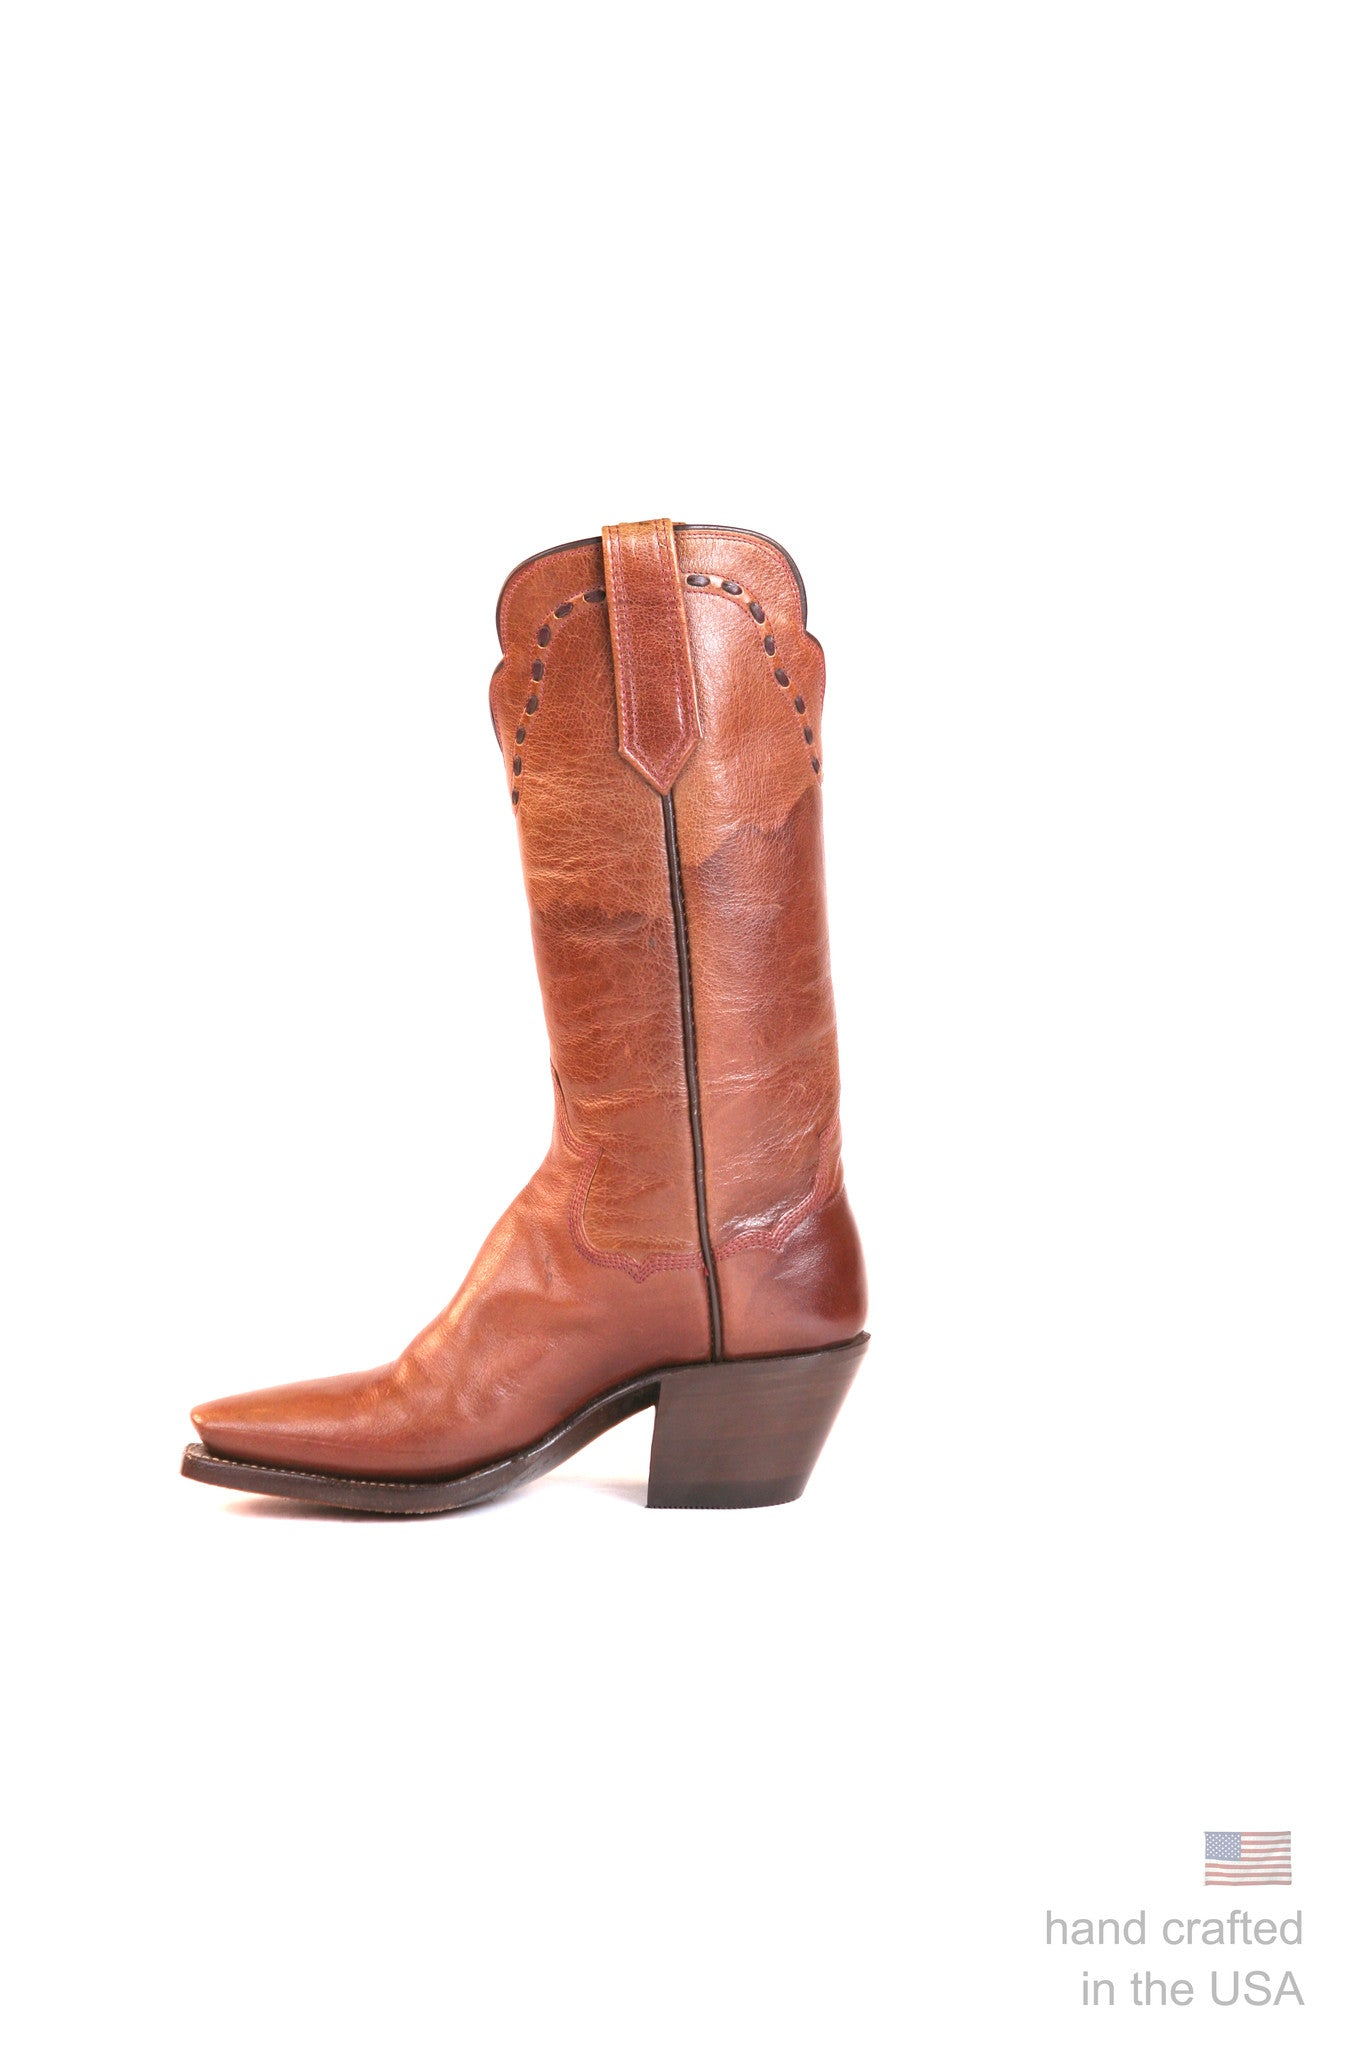 Singles: Boot 0014: Size 4.5 B